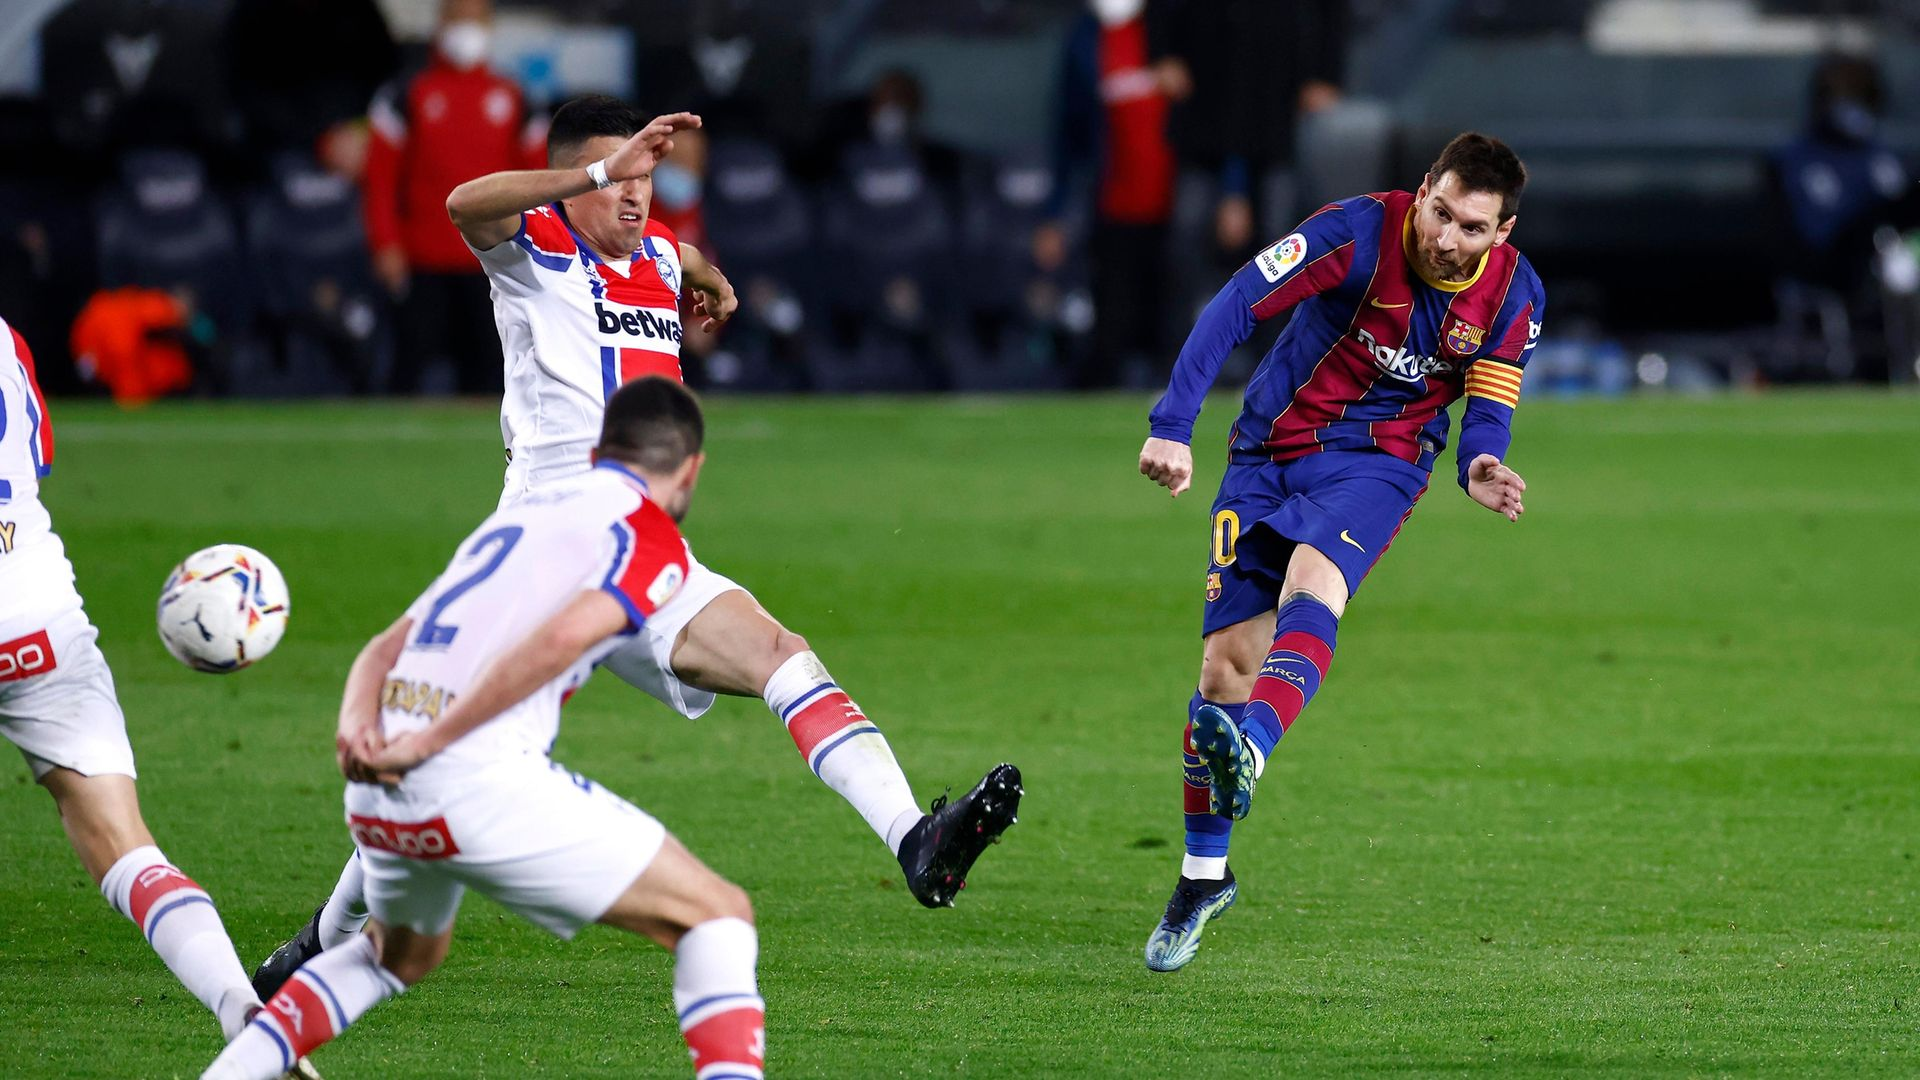 Lionel Messi of FC Barcelona scores at Camp Nou (Photo by Eric Alonso/Getty Images) - Credit: Getty Images